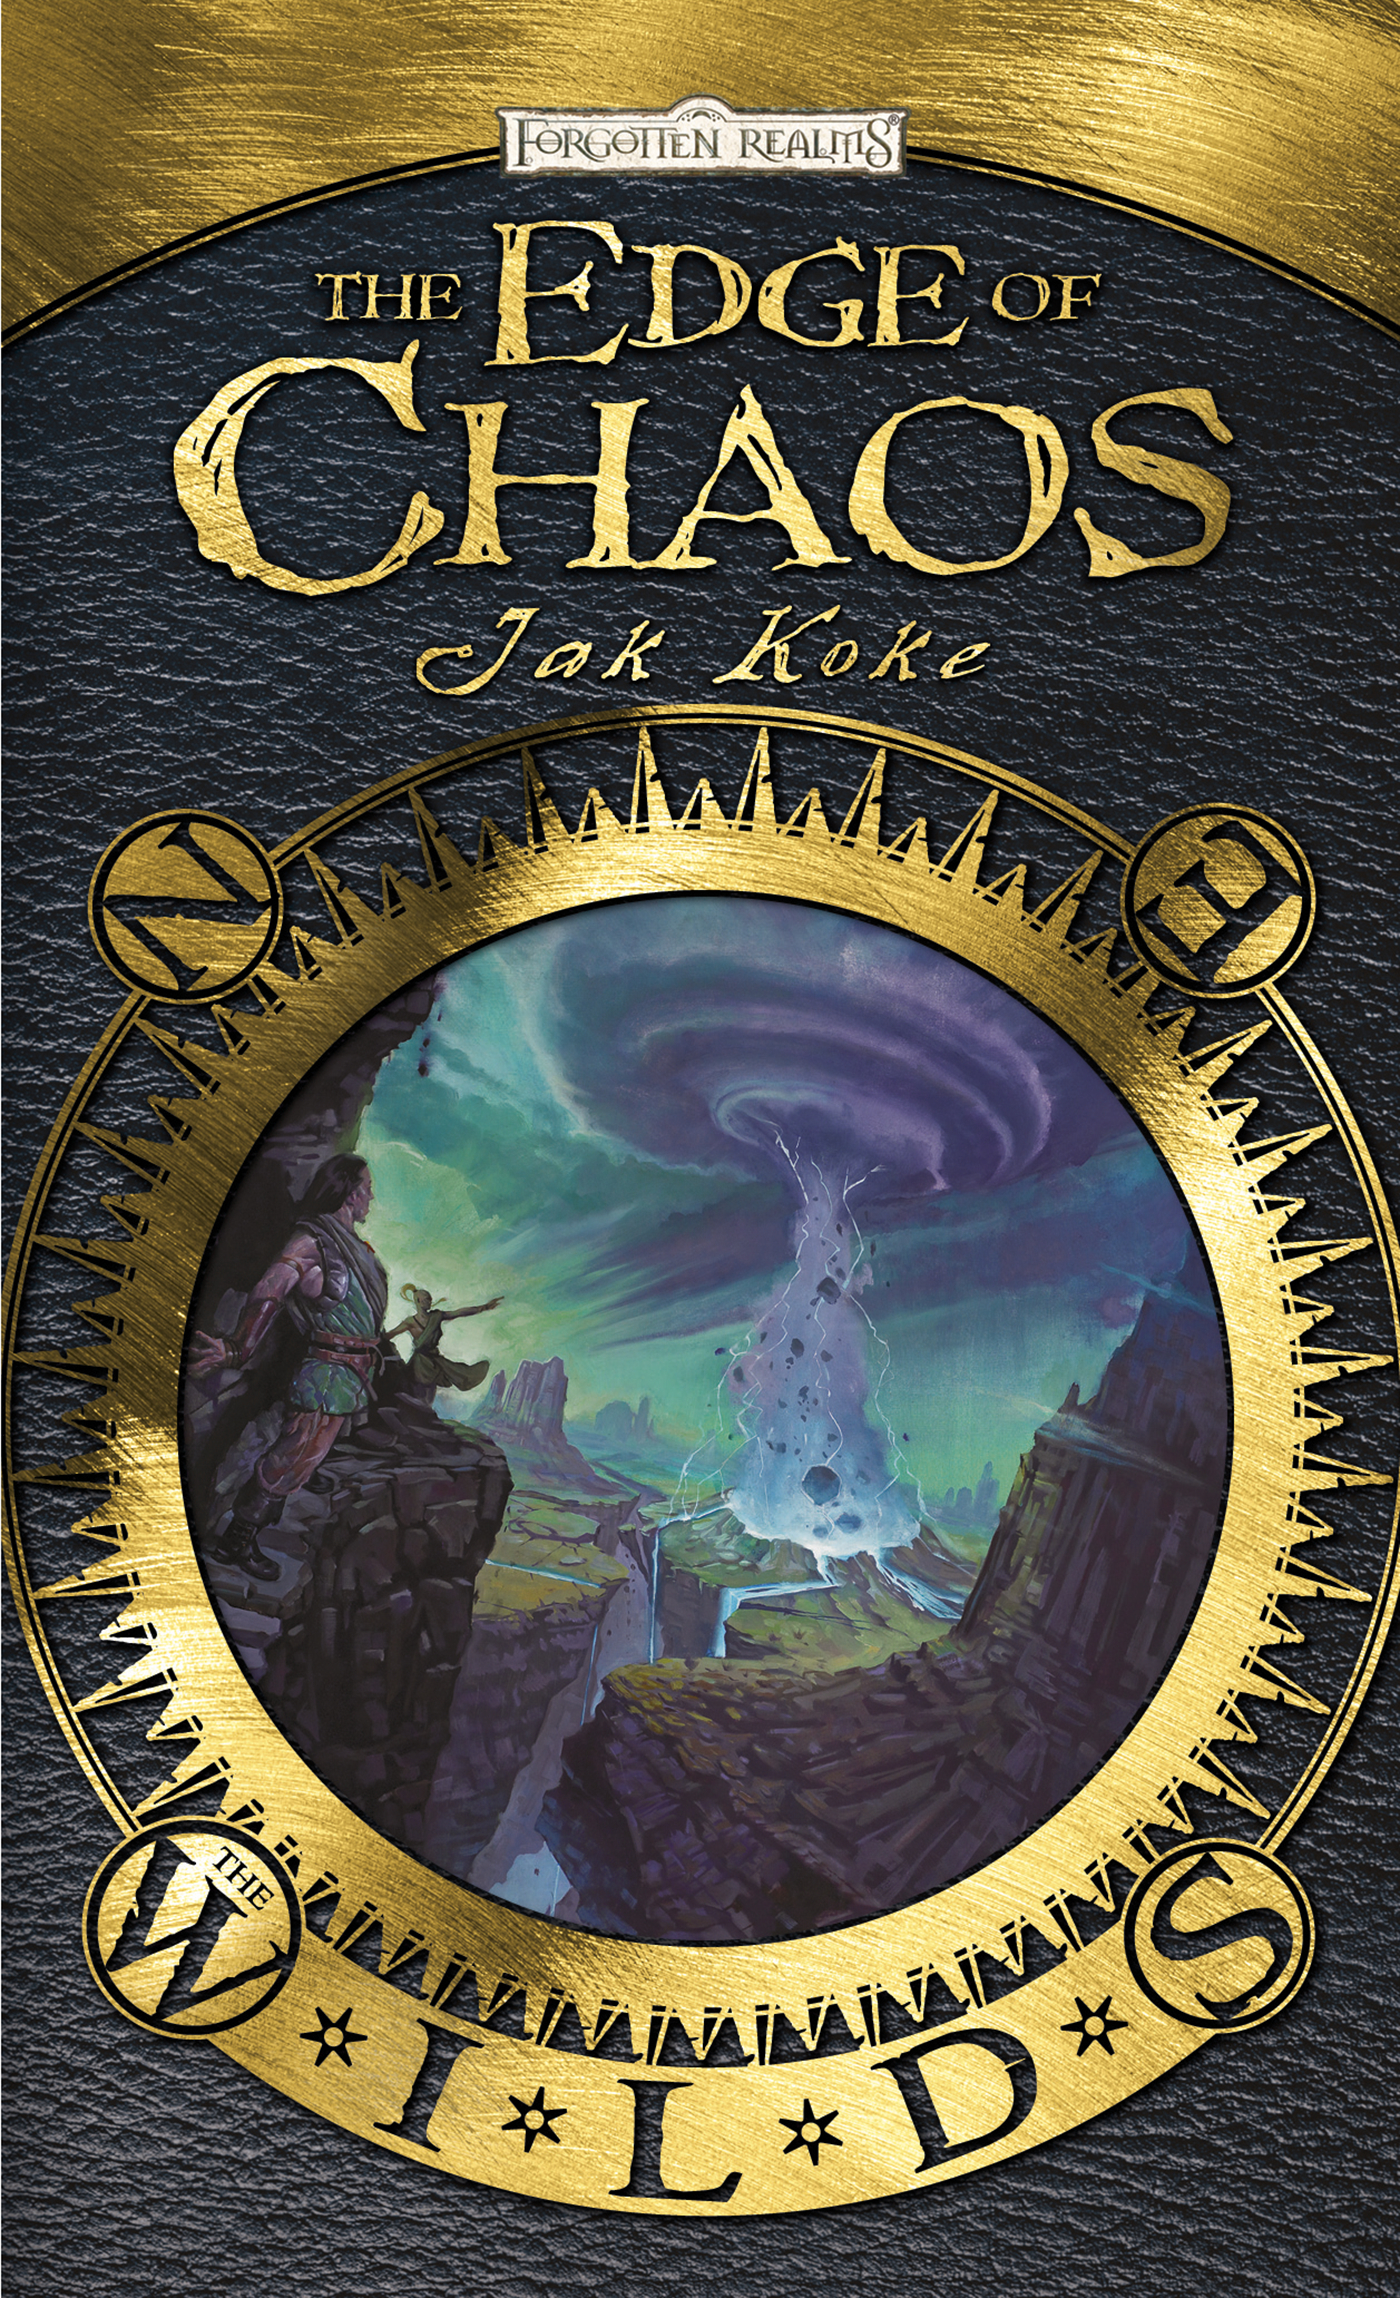 The Edge of Chaos | Forgotten Realms Wiki | FANDOM powered by Wikia